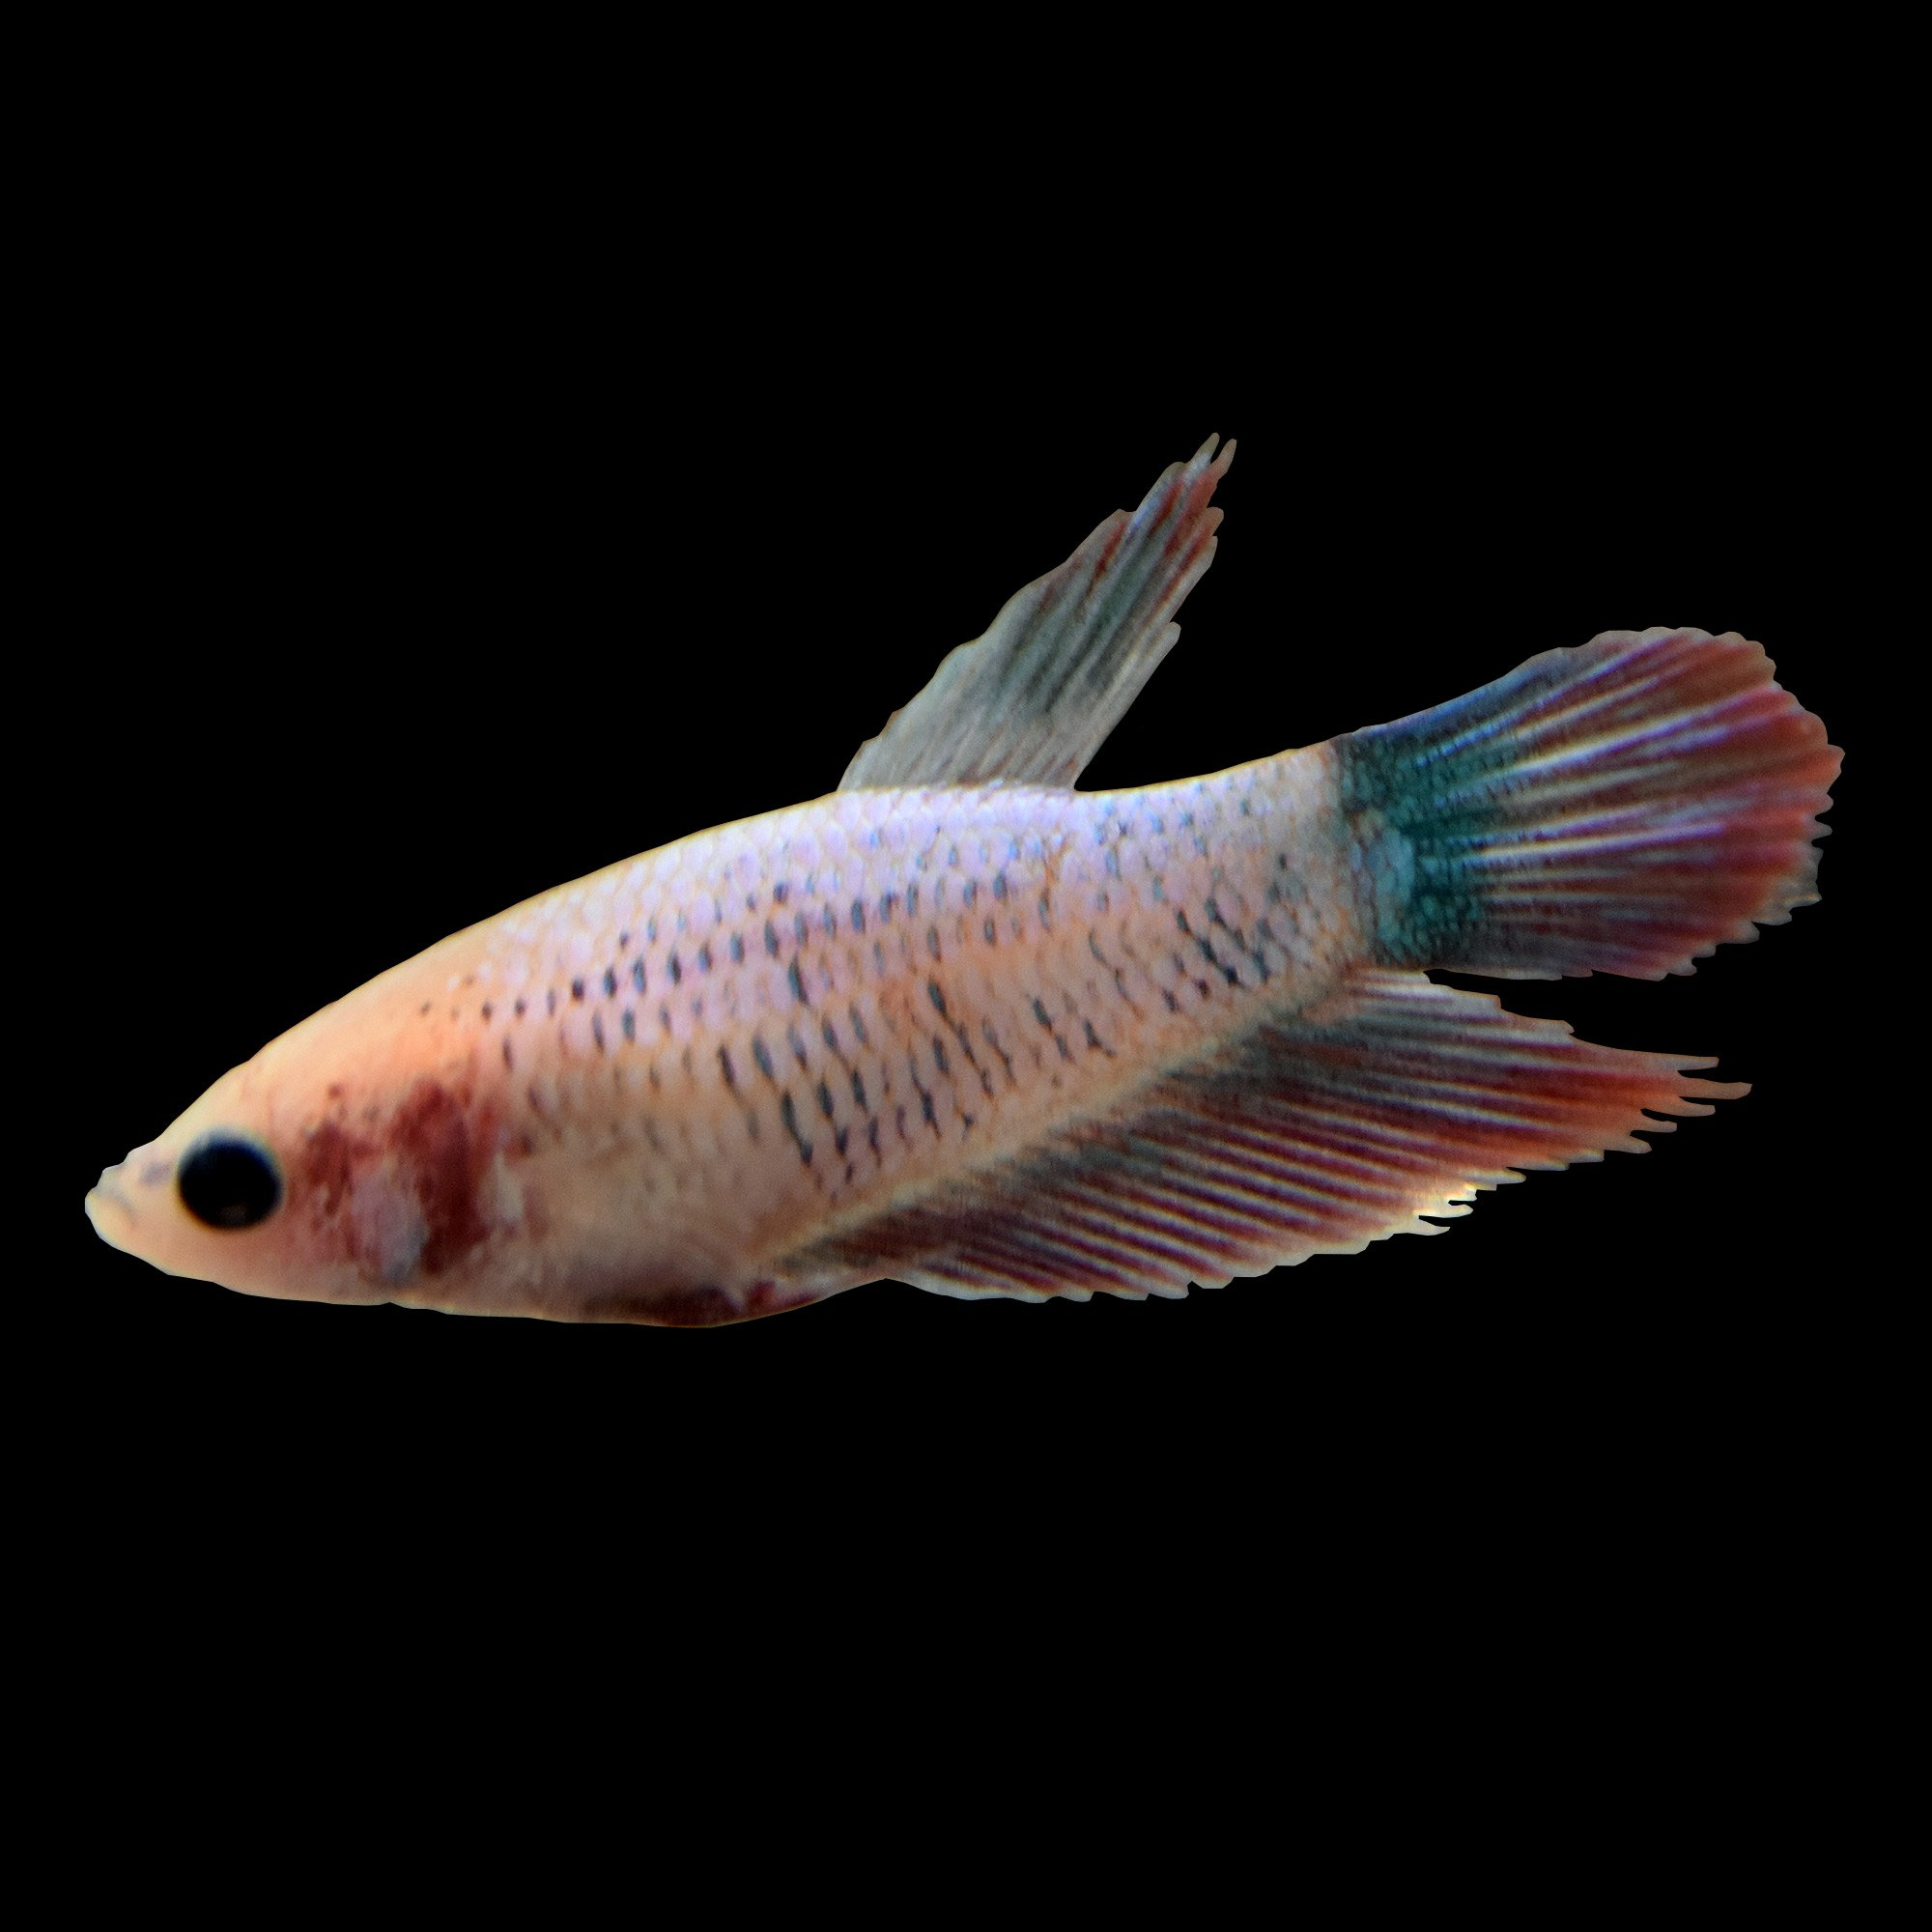 Female veiltail betta fish siamese fighting fish extra for Petco live fish